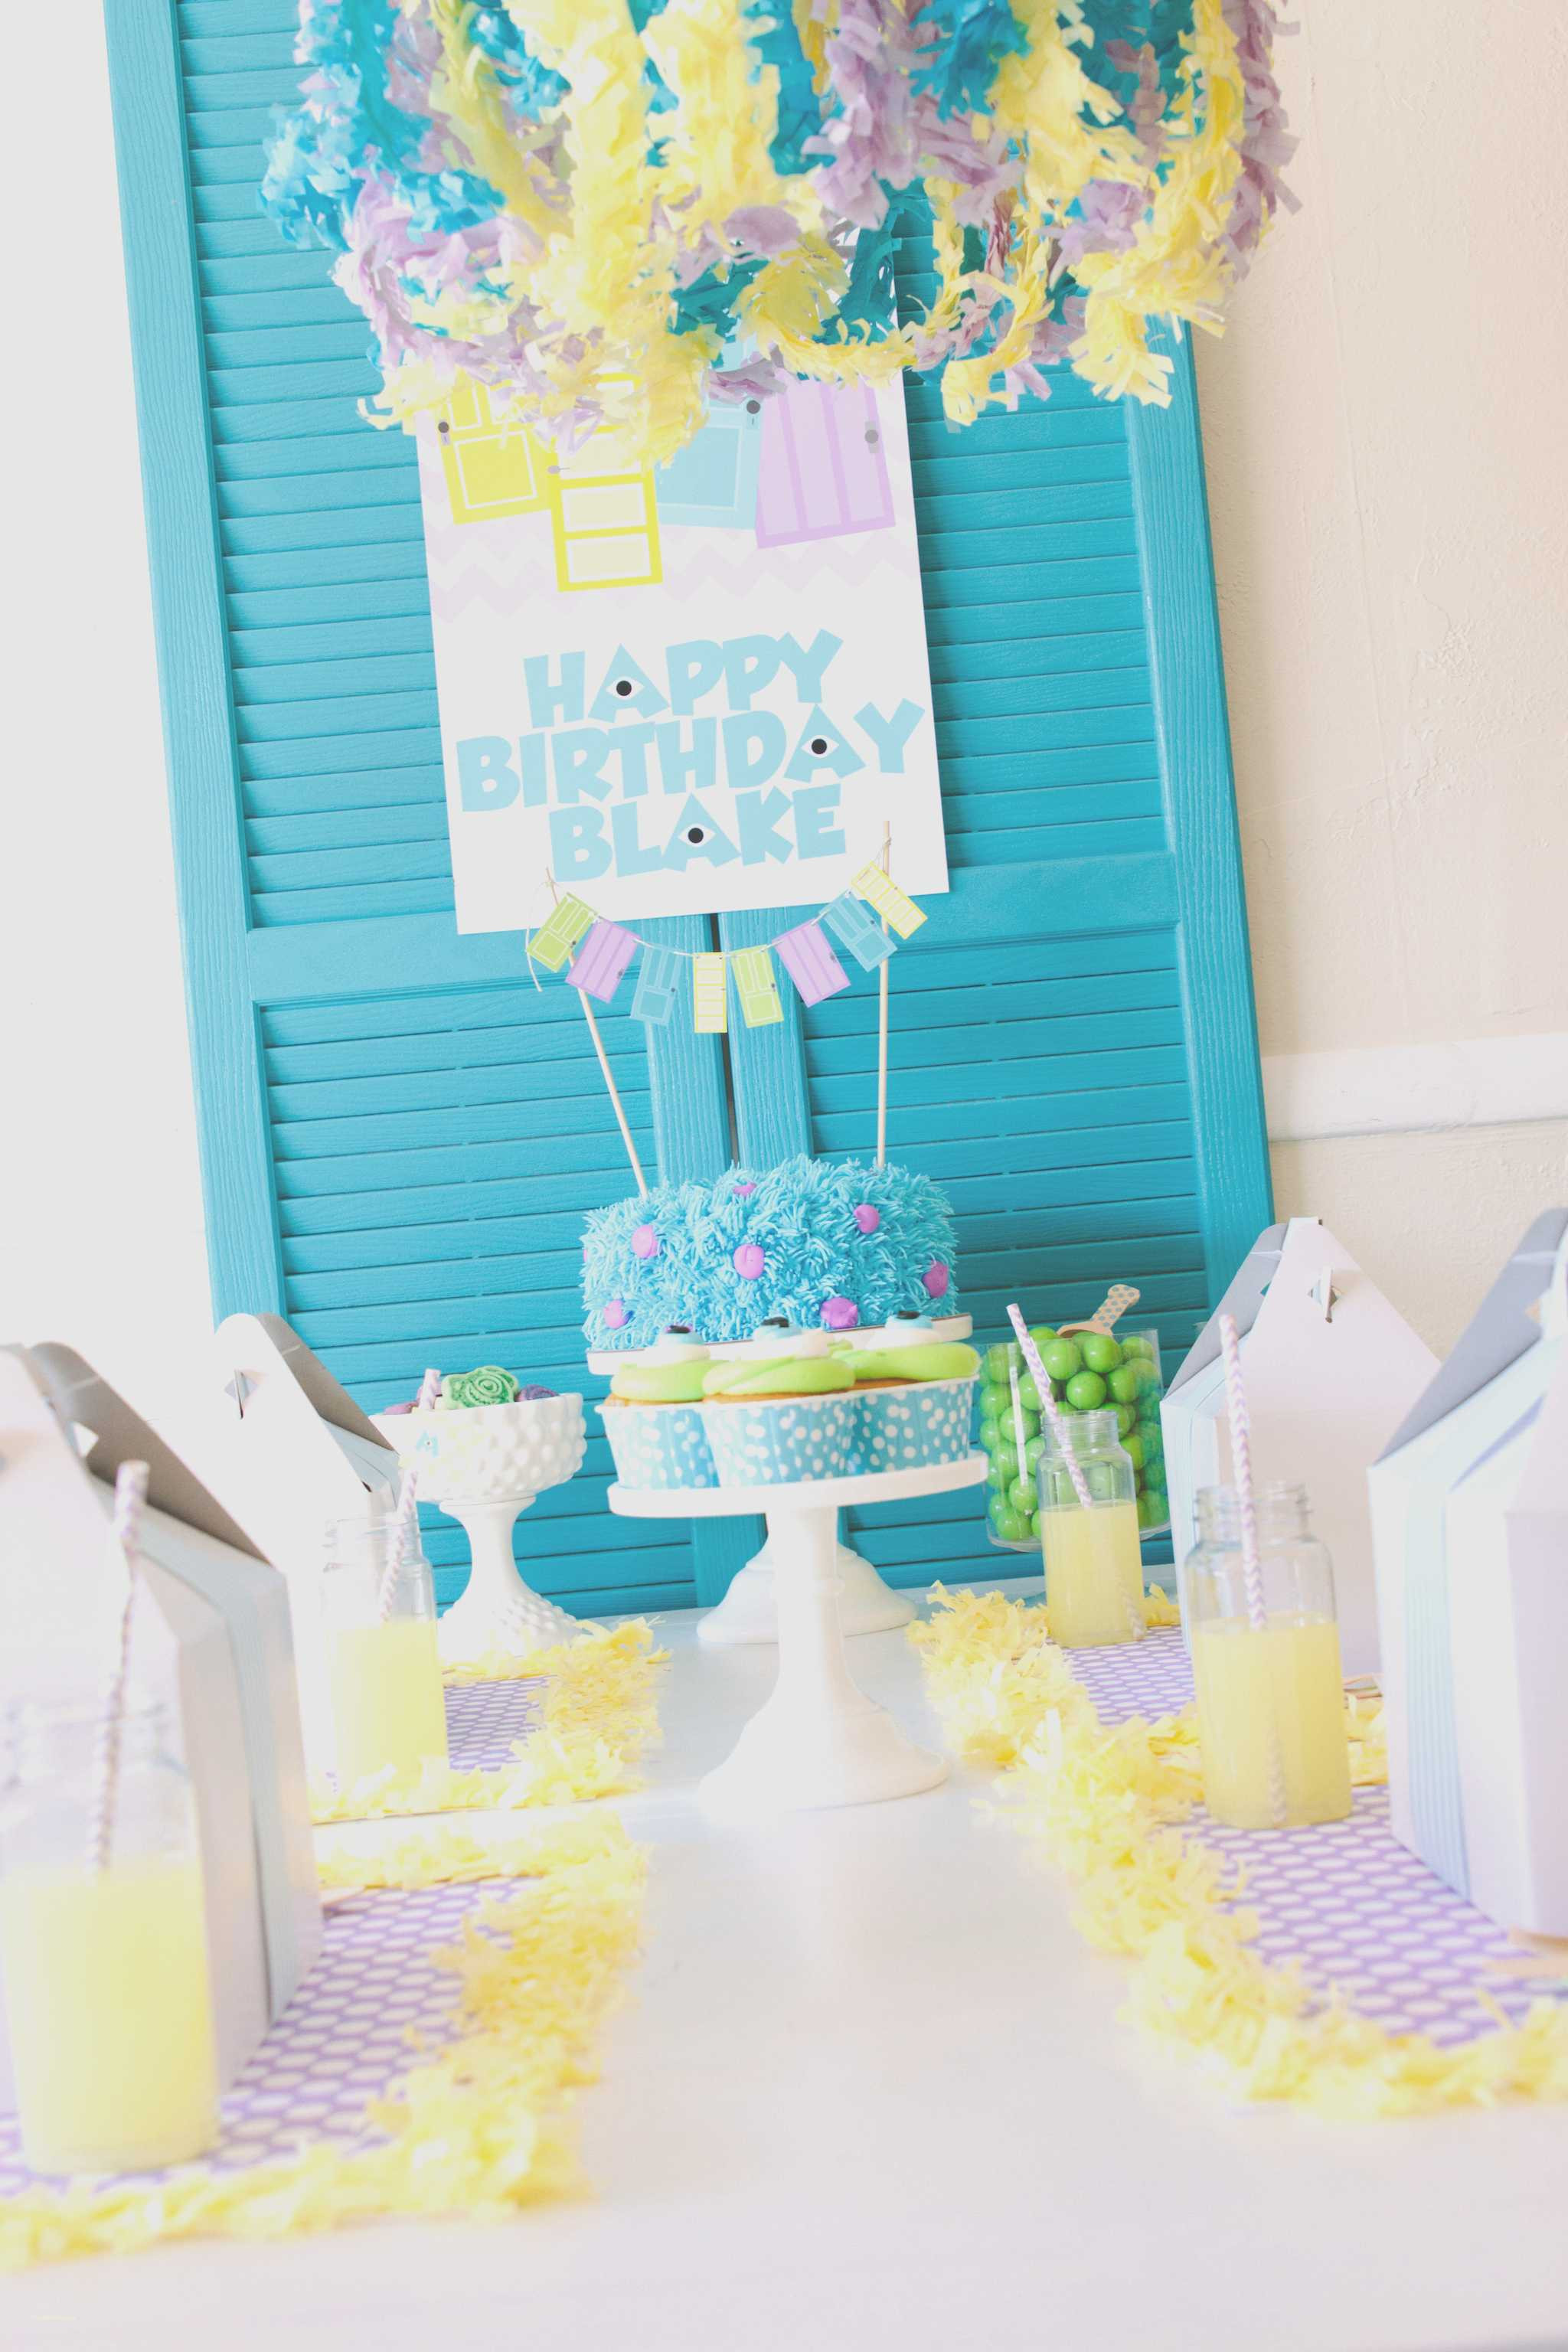 Best ideas about Babies Birthday Decorations . Save or Pin Awesome Monsters Inc Party Decorations Centerpieces Baby Now.